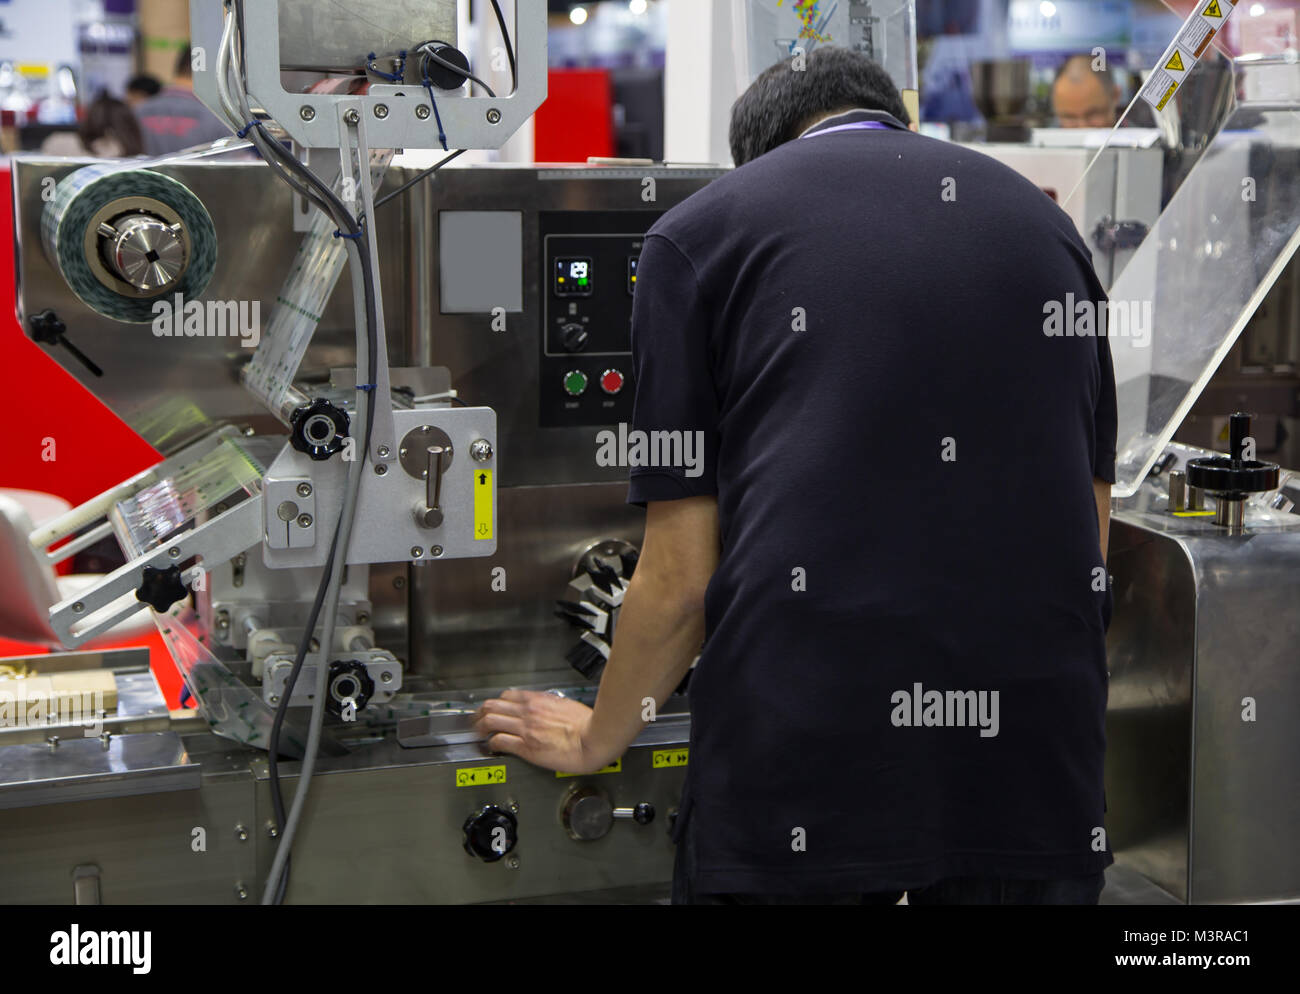 Food worker operate food packing machine - Stock Image